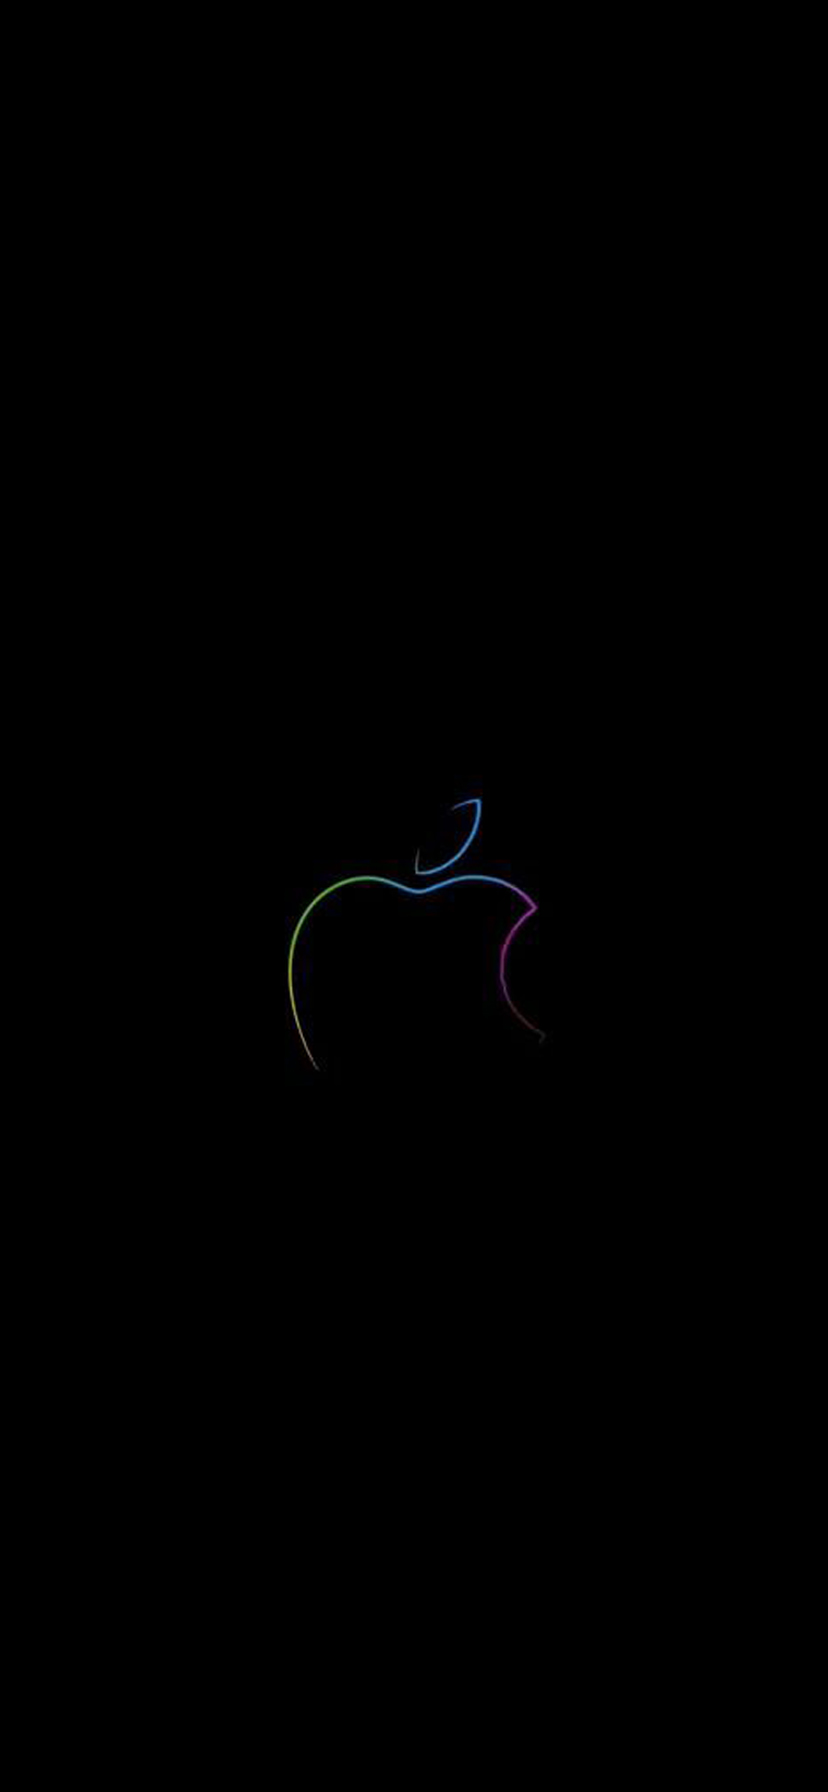 10 Alternative Wallpapers For Apple Iphone 11 01 Dark Background And Logo Hd Wallpapers Wallpapers Download High Resolution Wallpapers